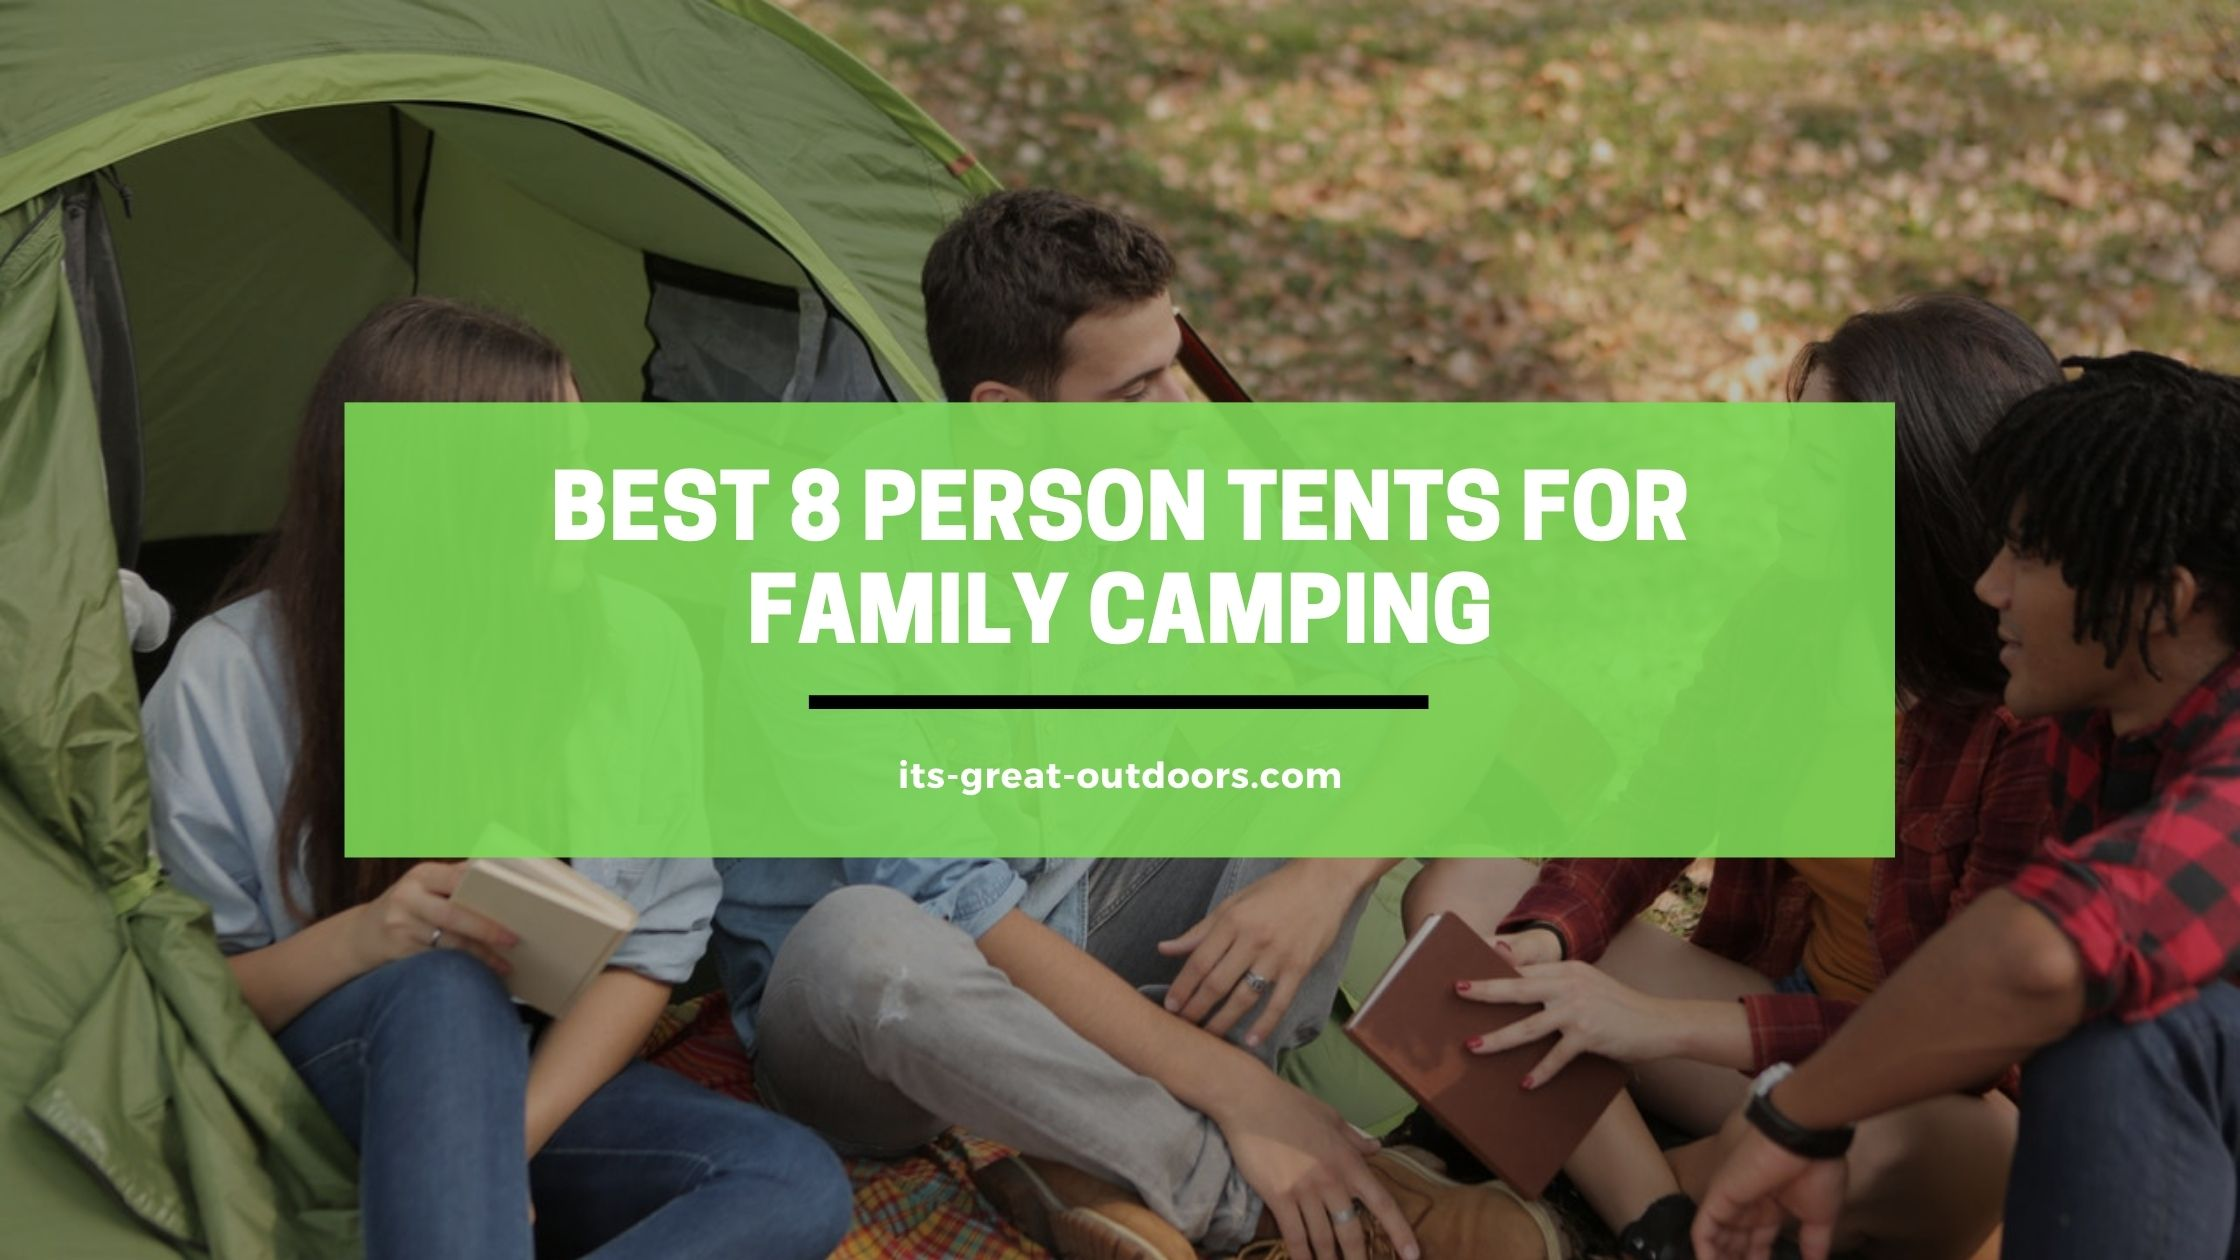 Best 8 Person Tents For Family Camping